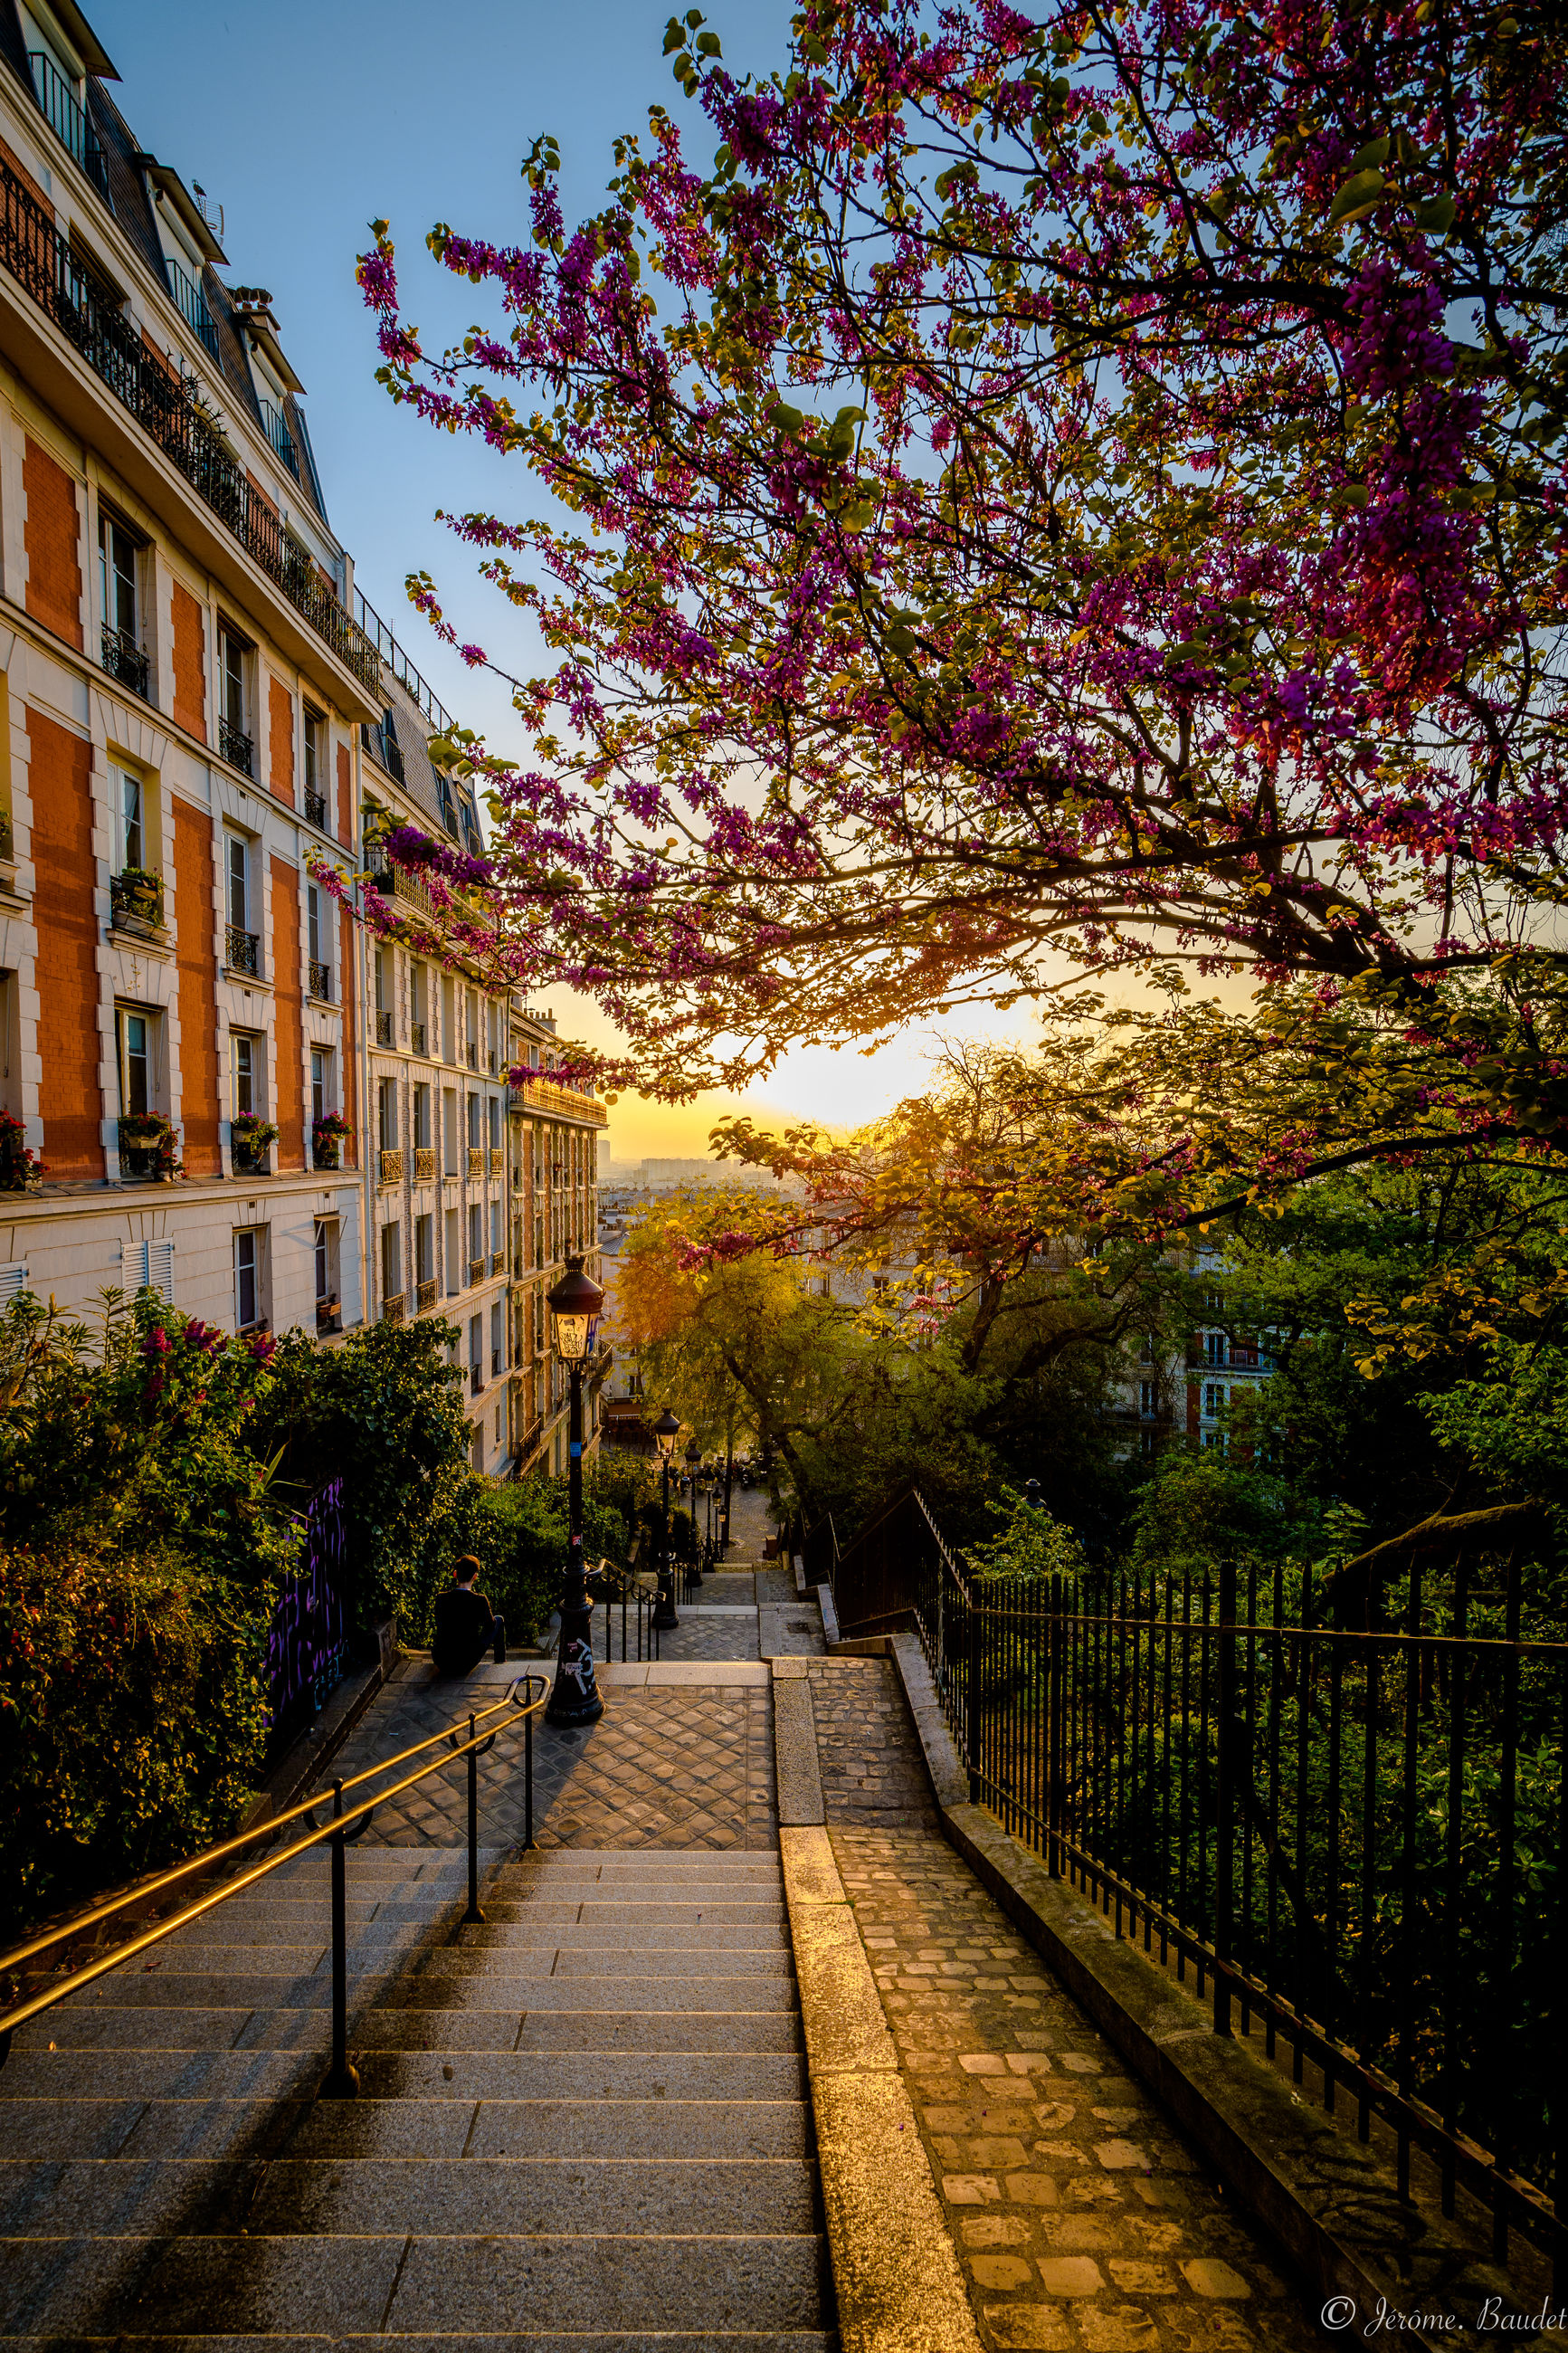 plant, architecture, built structure, tree, nature, building exterior, building, growth, sky, direction, footpath, city, the way forward, sunlight, no people, flower, outdoors, sidewalk, railing, residential district, cherry blossom